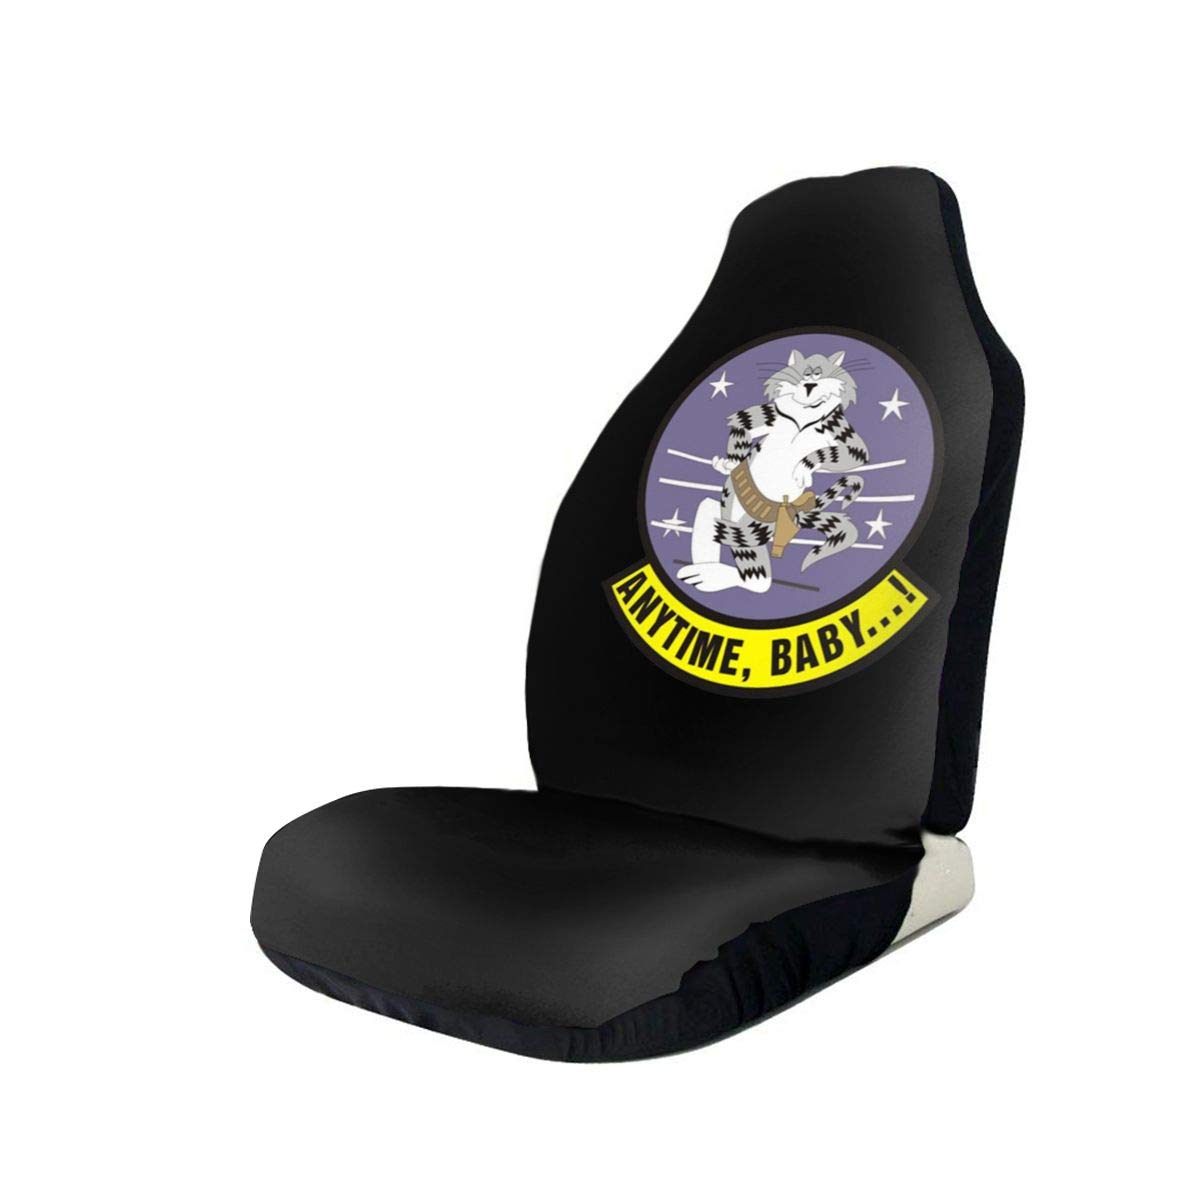 US Navy F-14 Tomcat Squadron Anti-Skid and Waterproof Car Seat Covers Protector Fits Most Cars, Auto SUVs Trucks